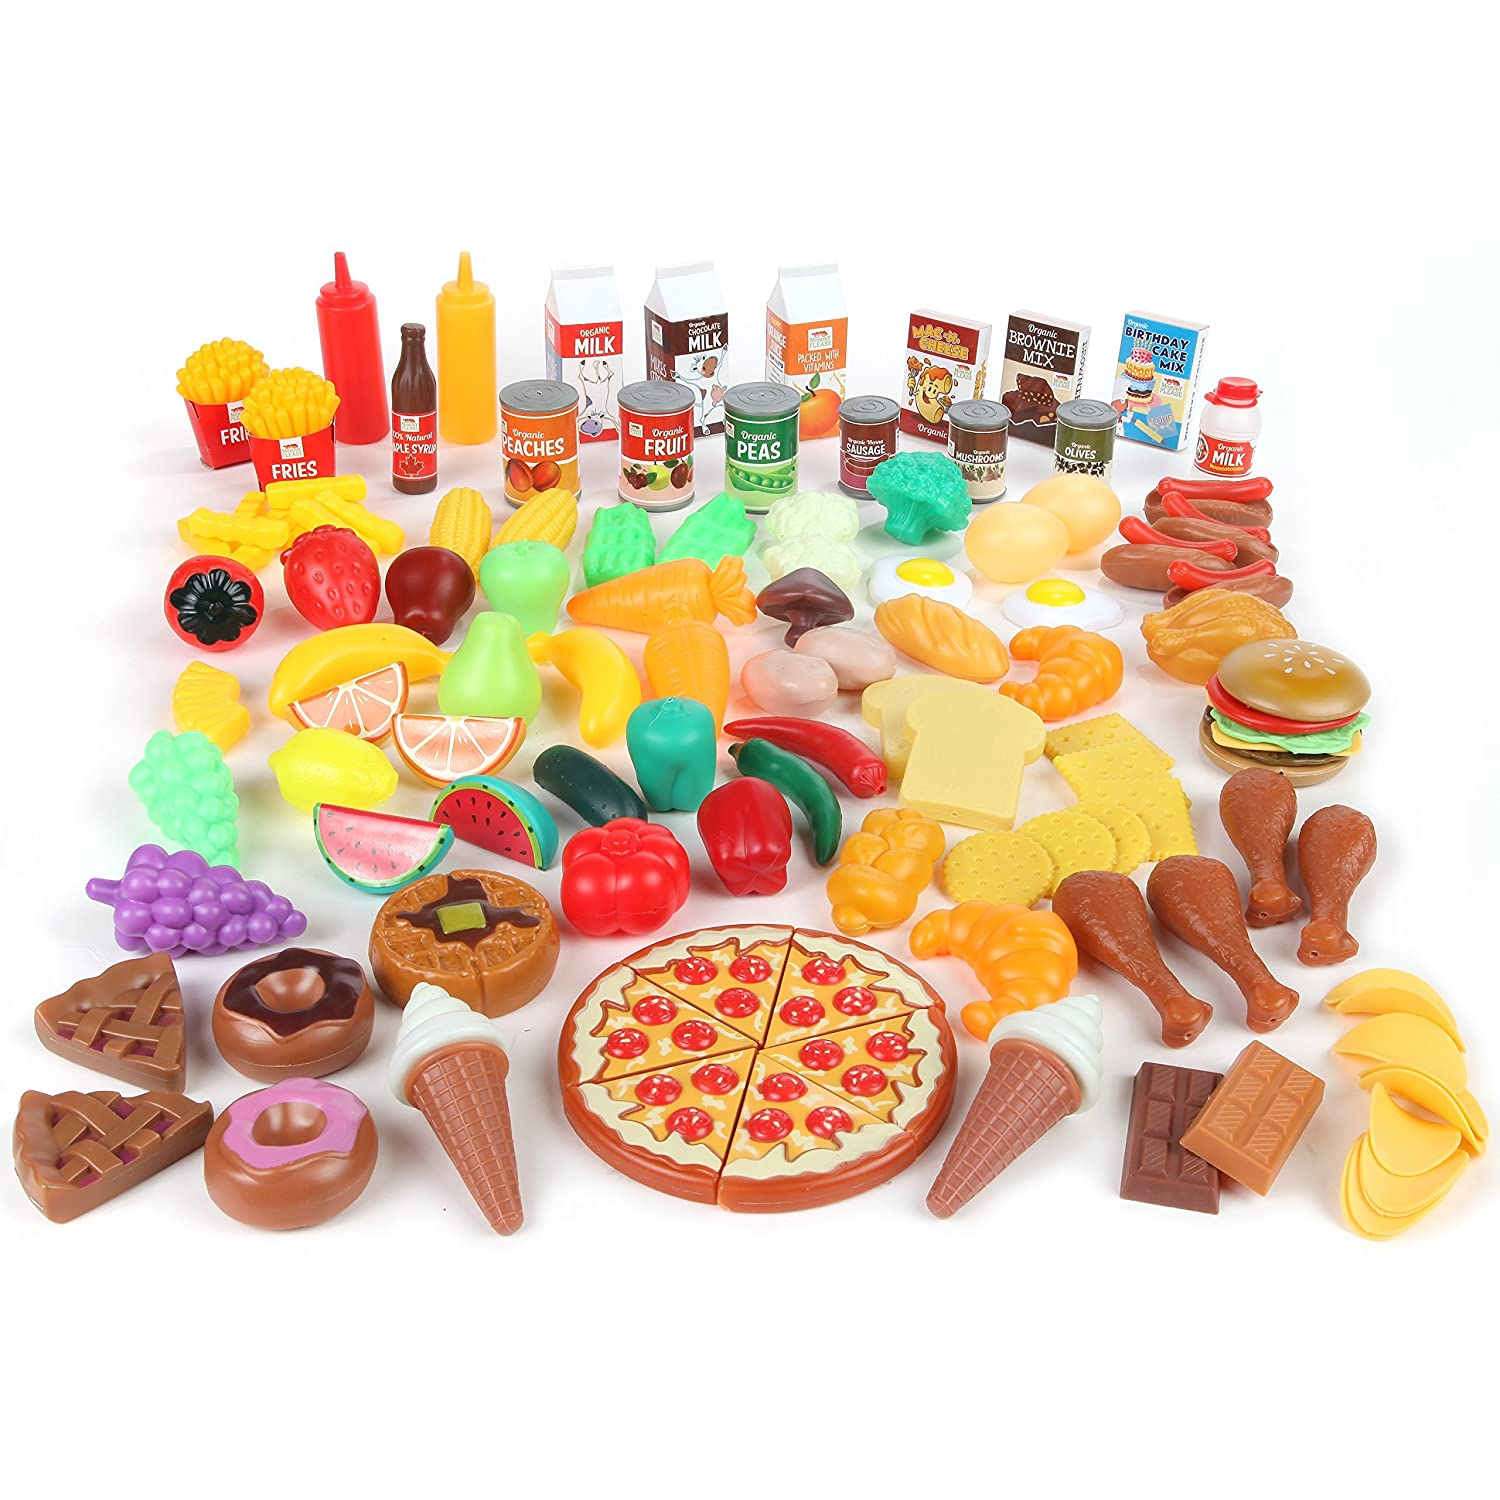 Amazon com play food set for kids toy food for pretend play huge 125 piece play kitchen set with childrens educational food toys for toddlers inspires